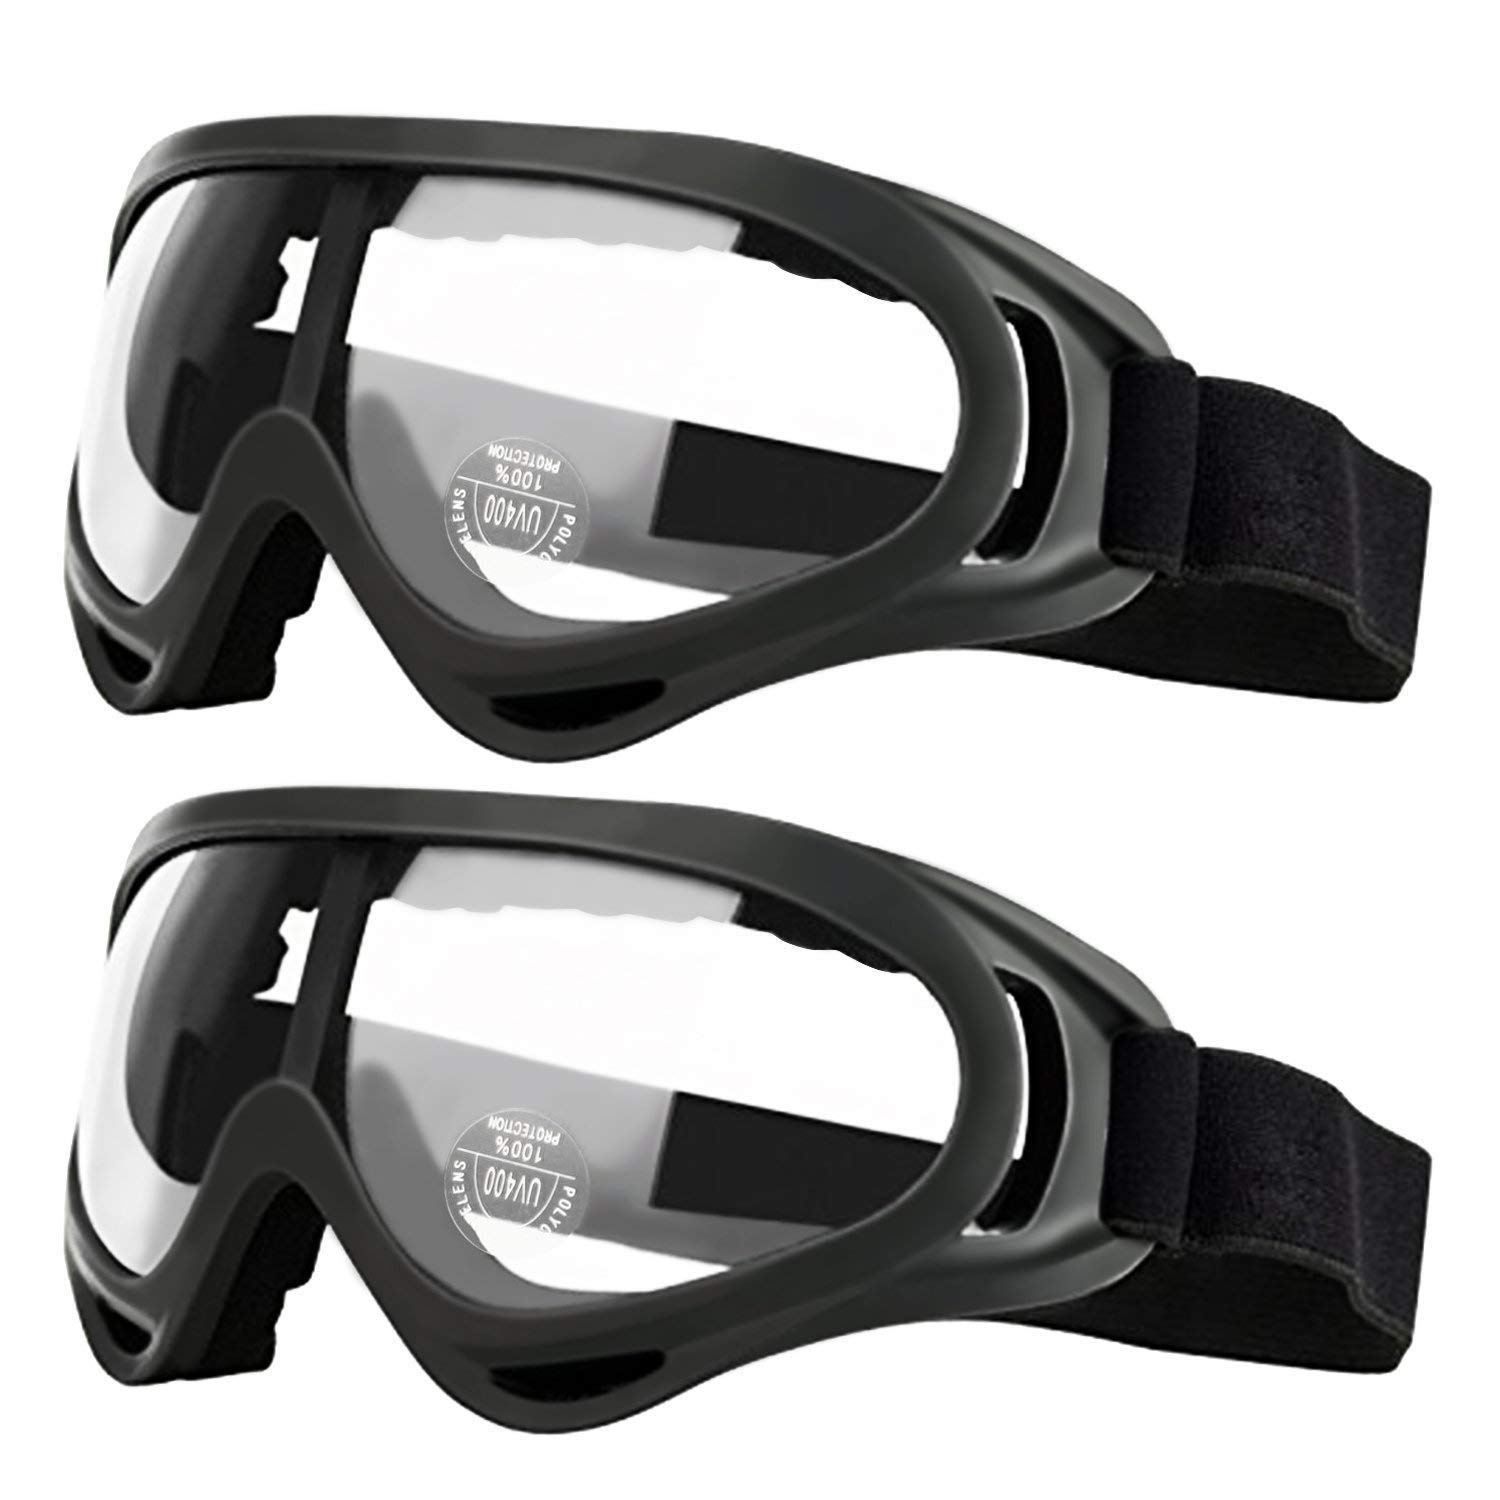 GUSTYLE 2 Pack Children's Safety Glasses with Wind Resistance and UV400 Protection Perfect for Foam Blasters Gun